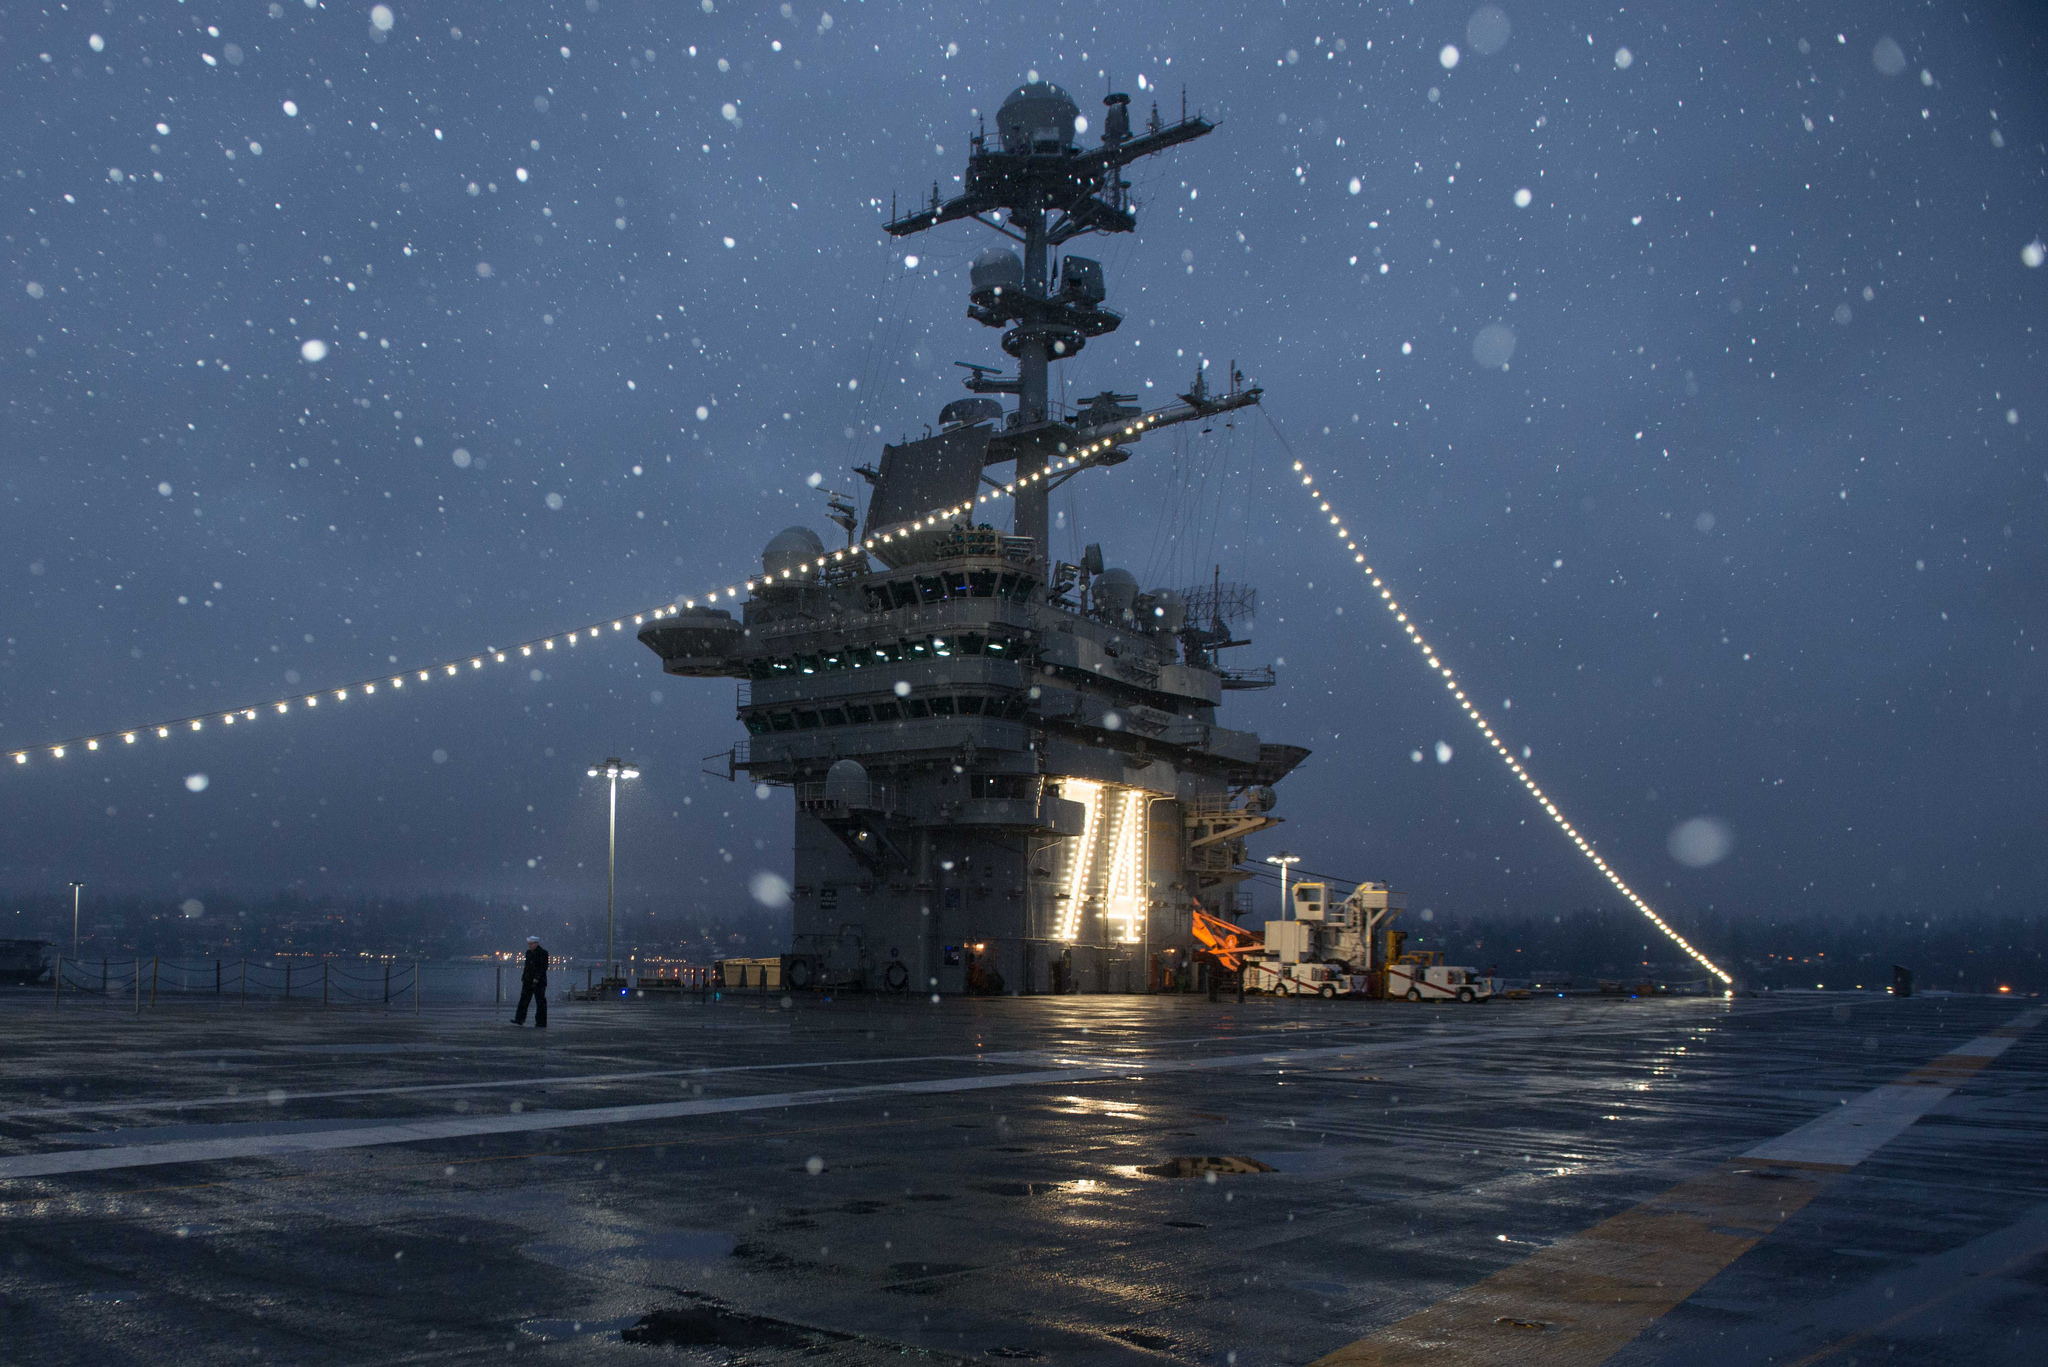 A Sailor walks across the flight deck of the aircraft carrier USS John C. Stennis (CVN 74) after being relieved from watch. John C. Stennis is in port conducting routine training as it continues preparing for its next scheduled deployment. (Mass Communication Specialist Seaman Erika Kugler/Navy)